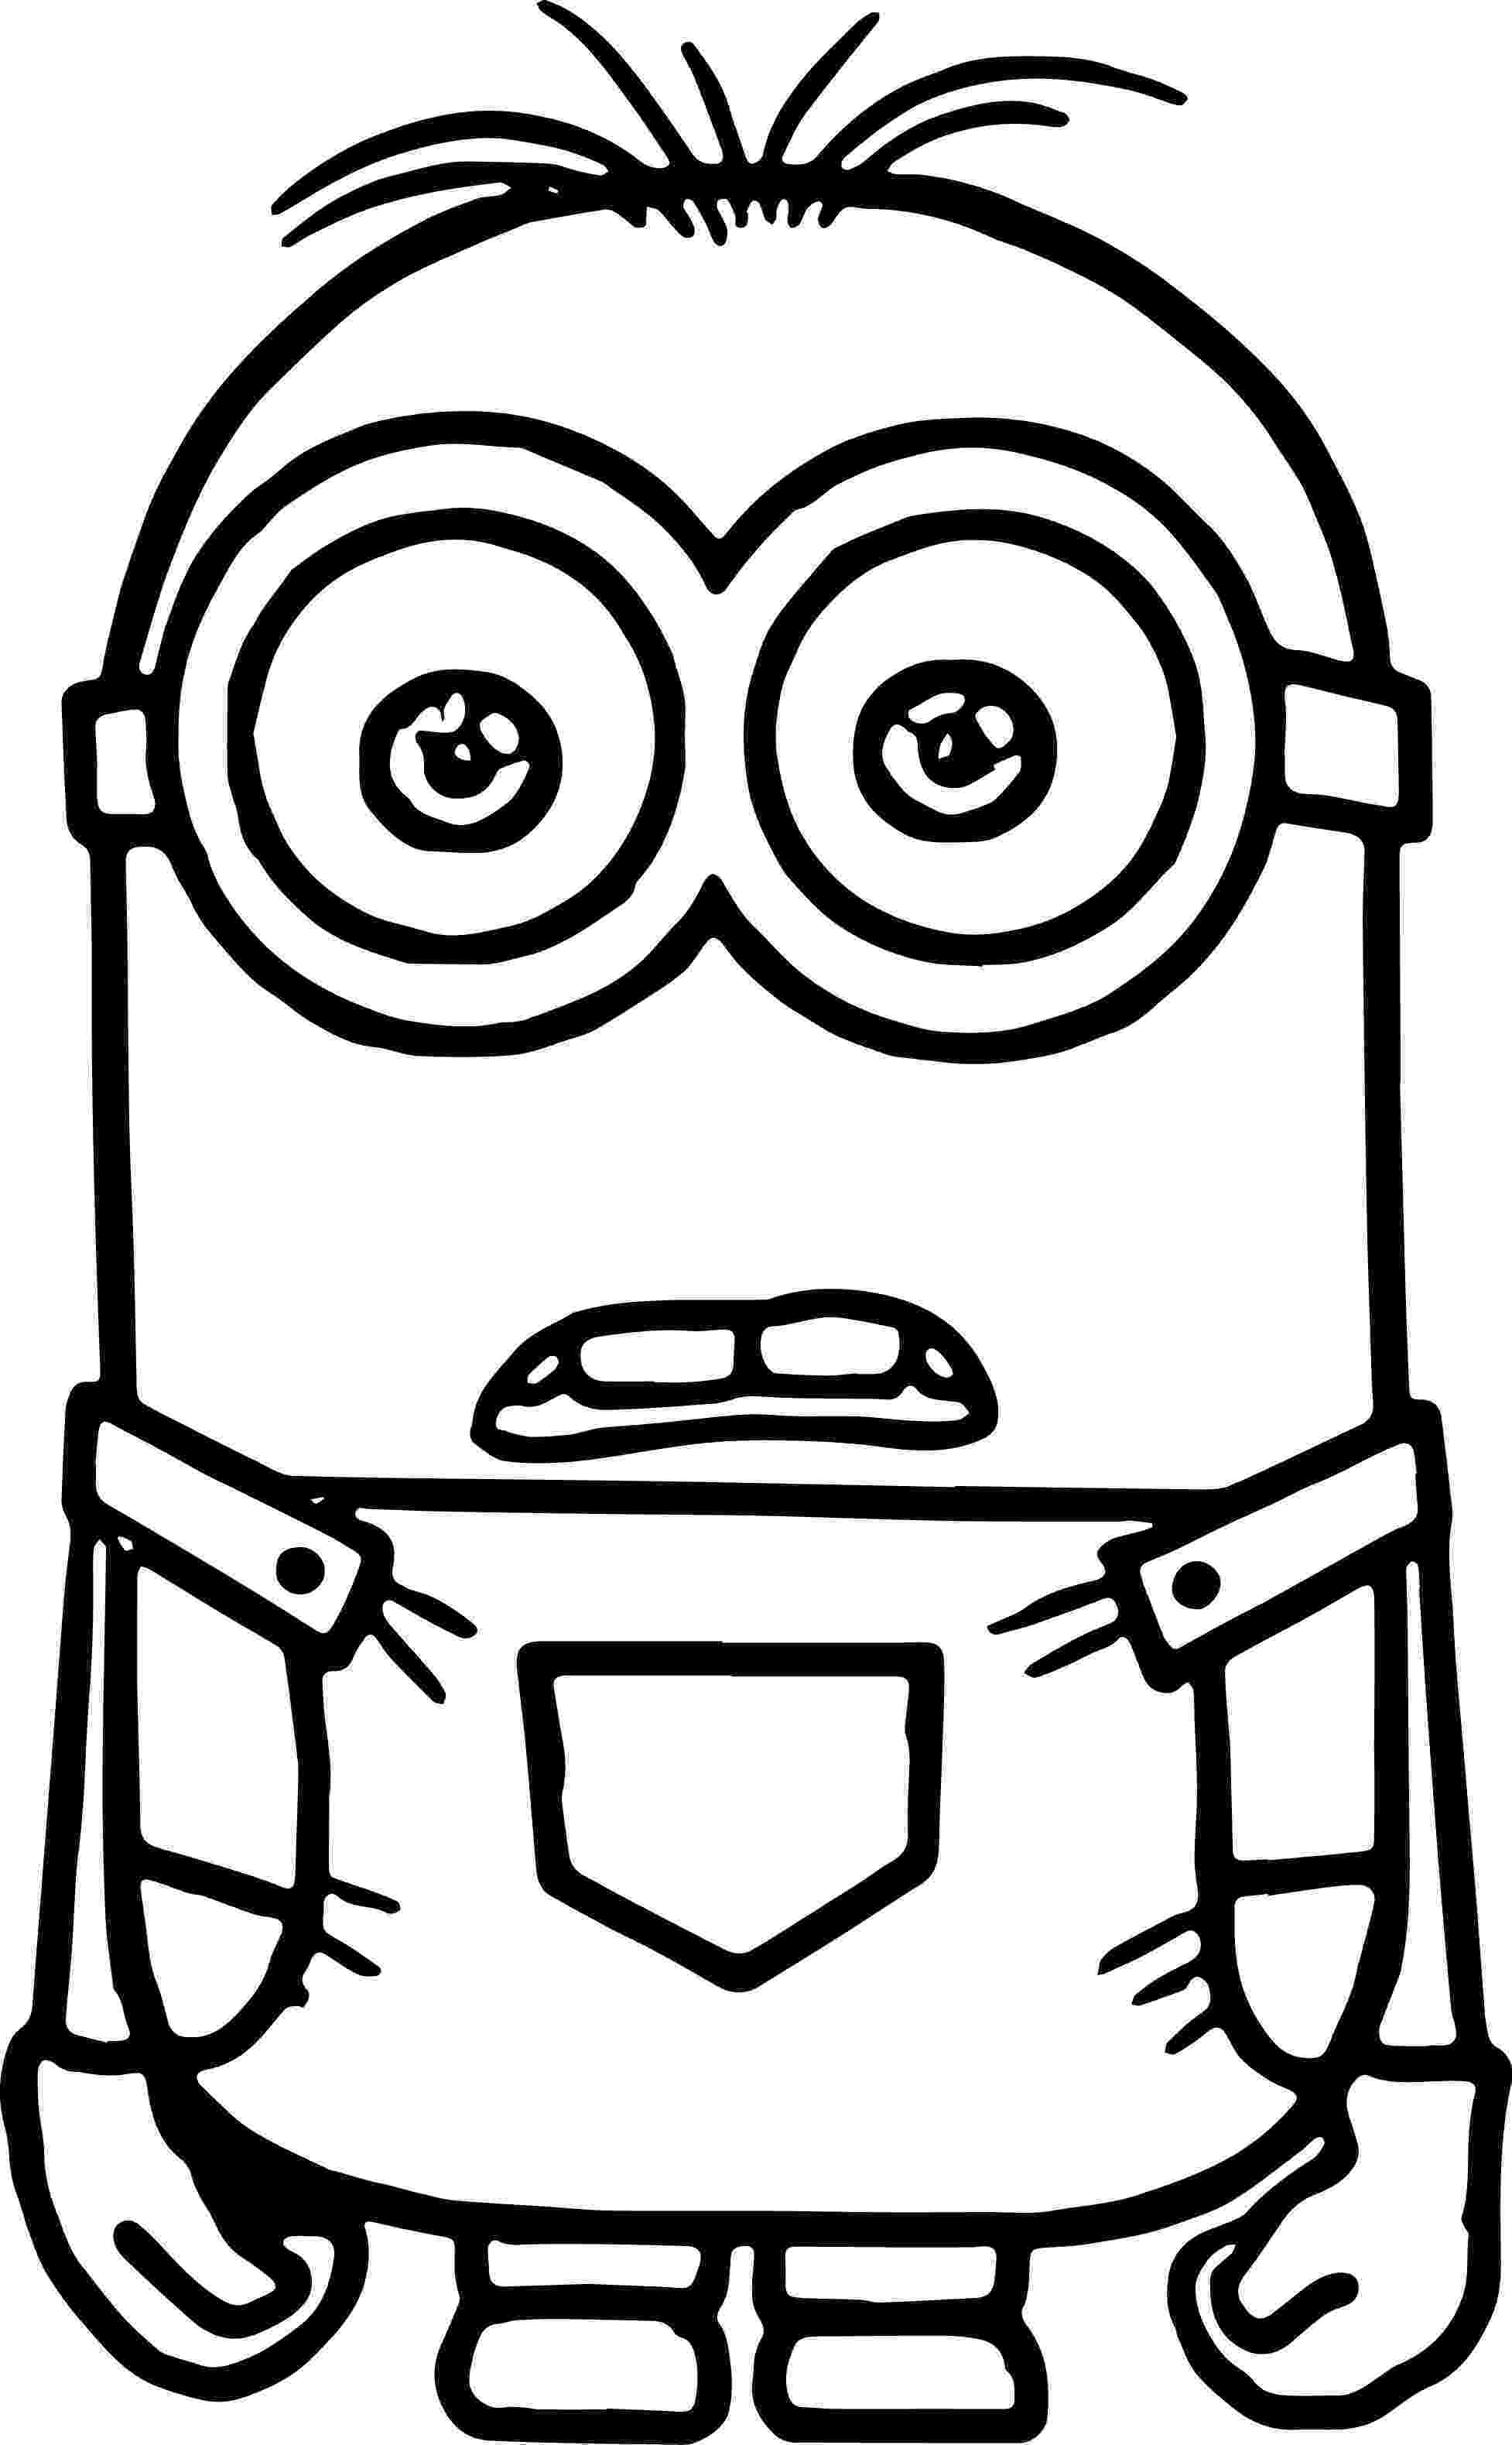 coloring pages online minions minion coloring pages fotolipcom rich image and wallpaper online coloring minions pages